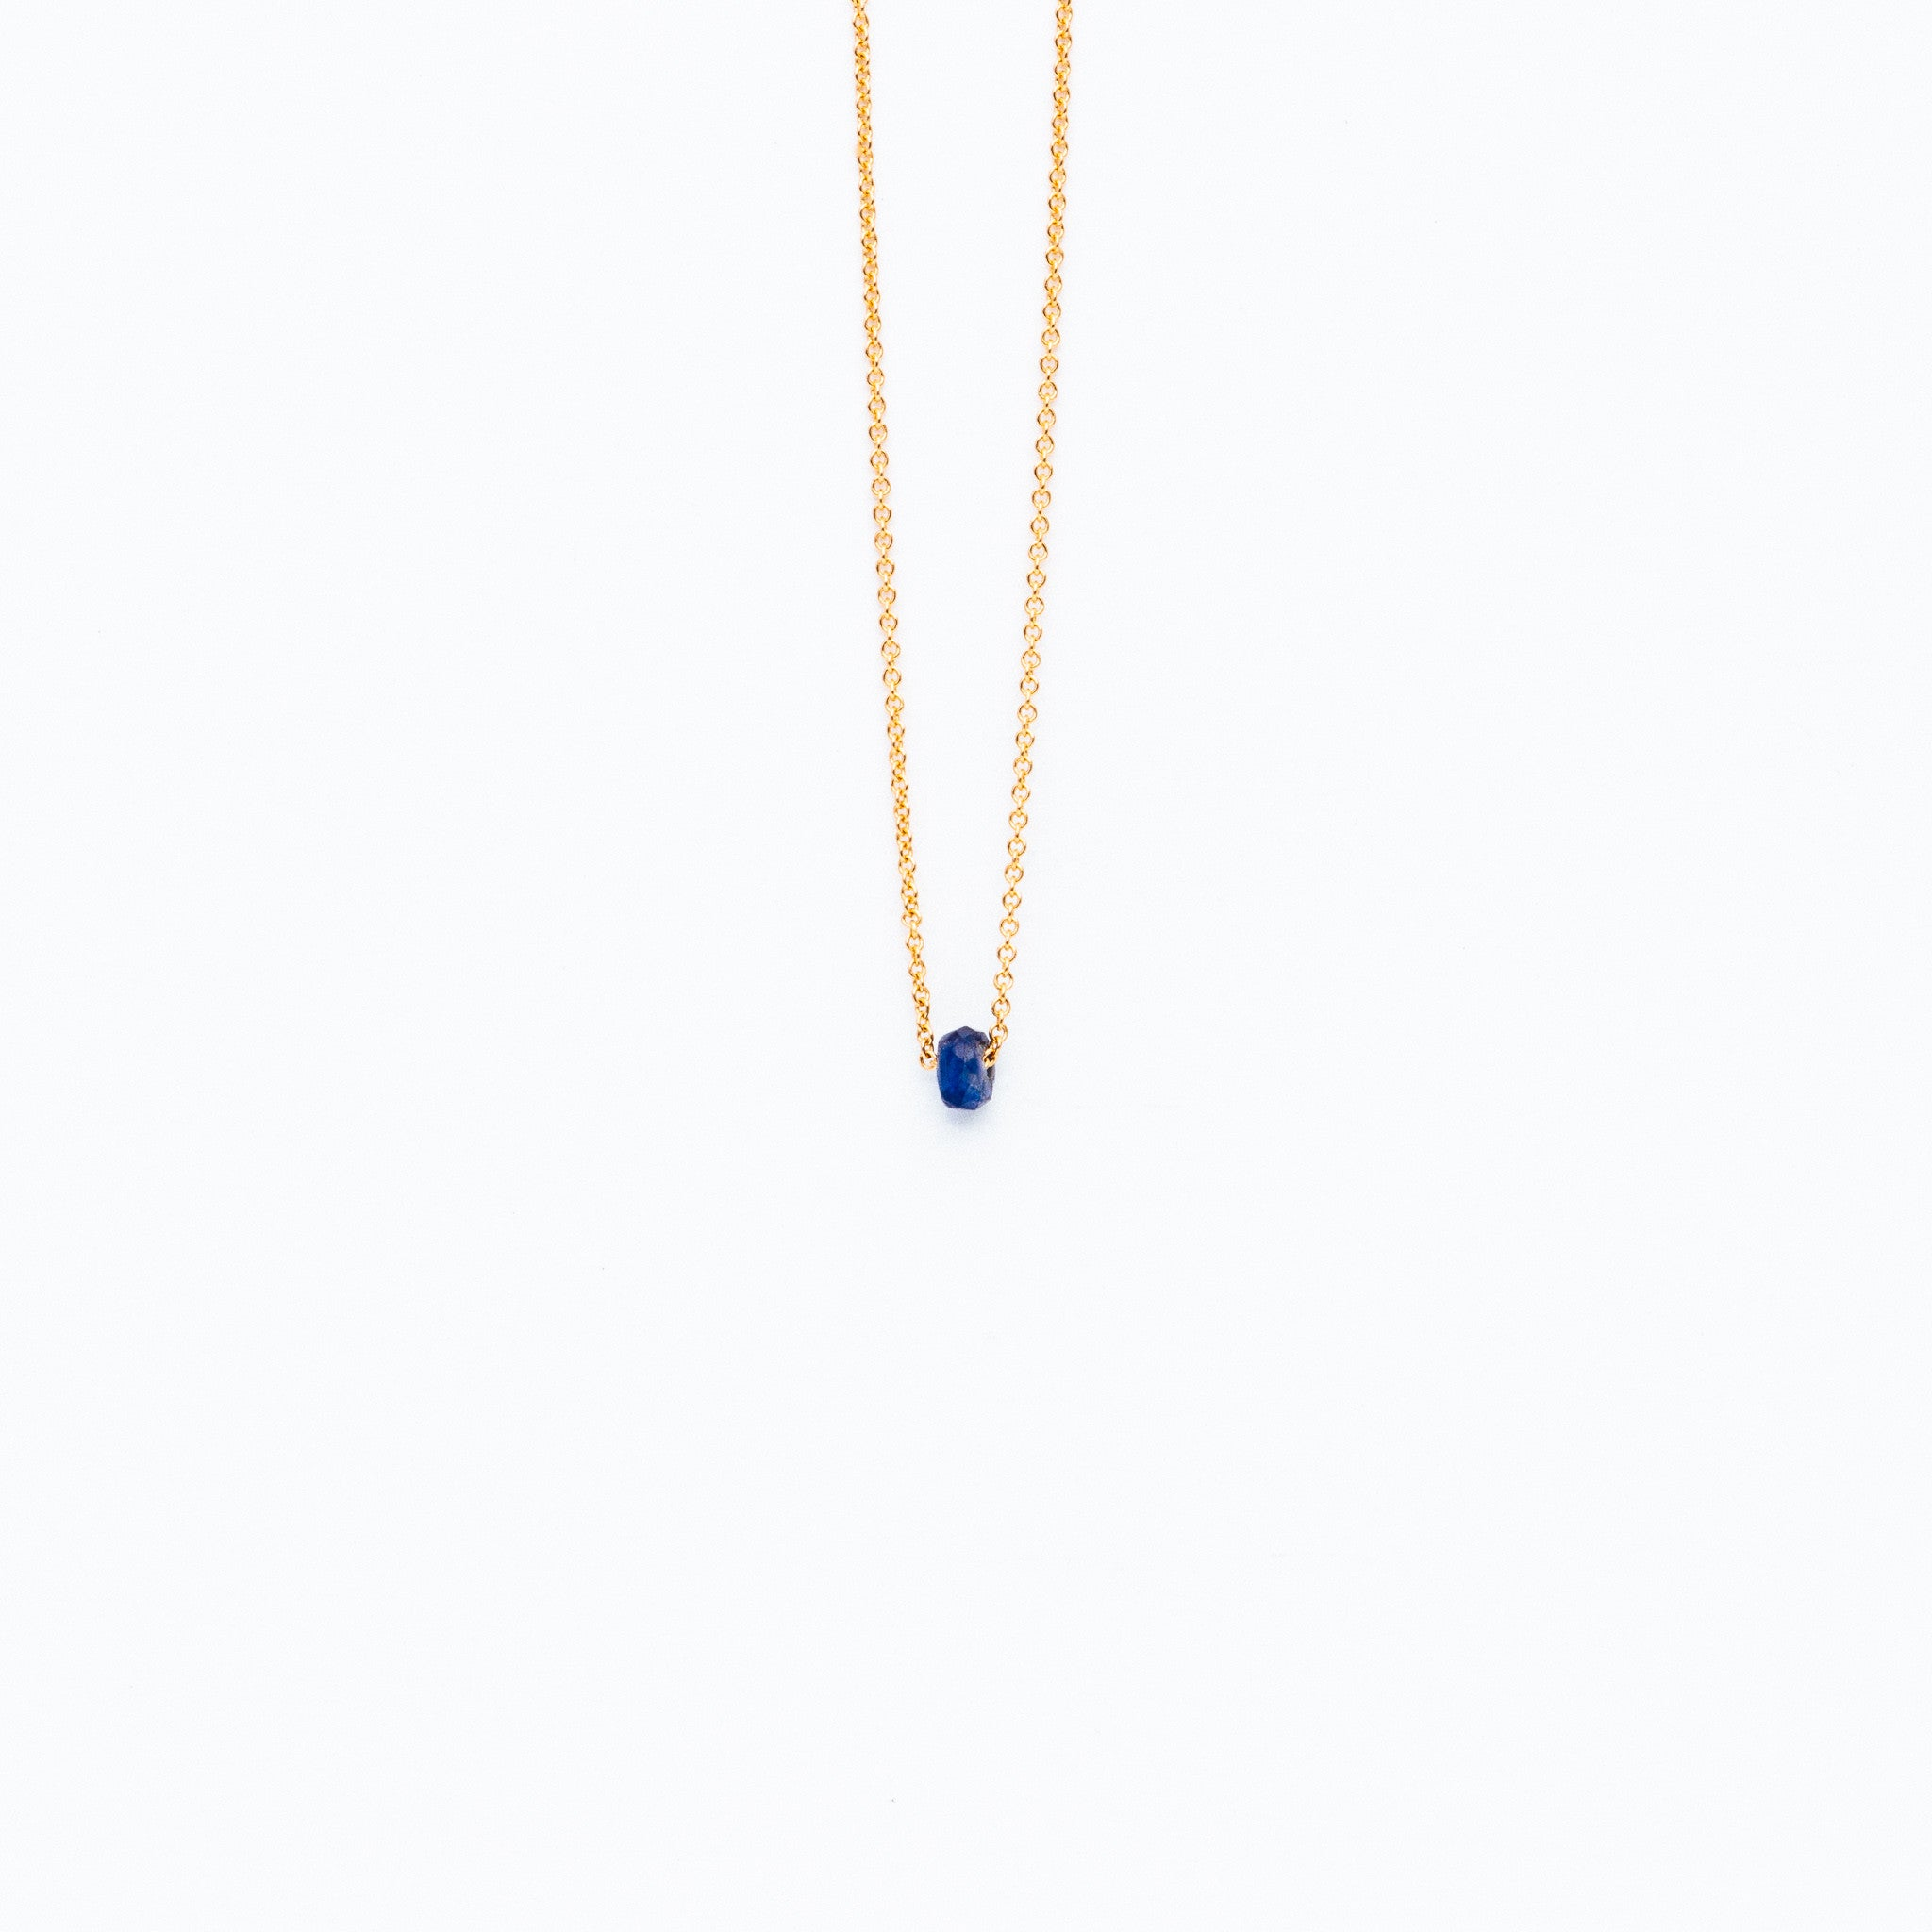 decjuba bar necklace dainty double rosegold products